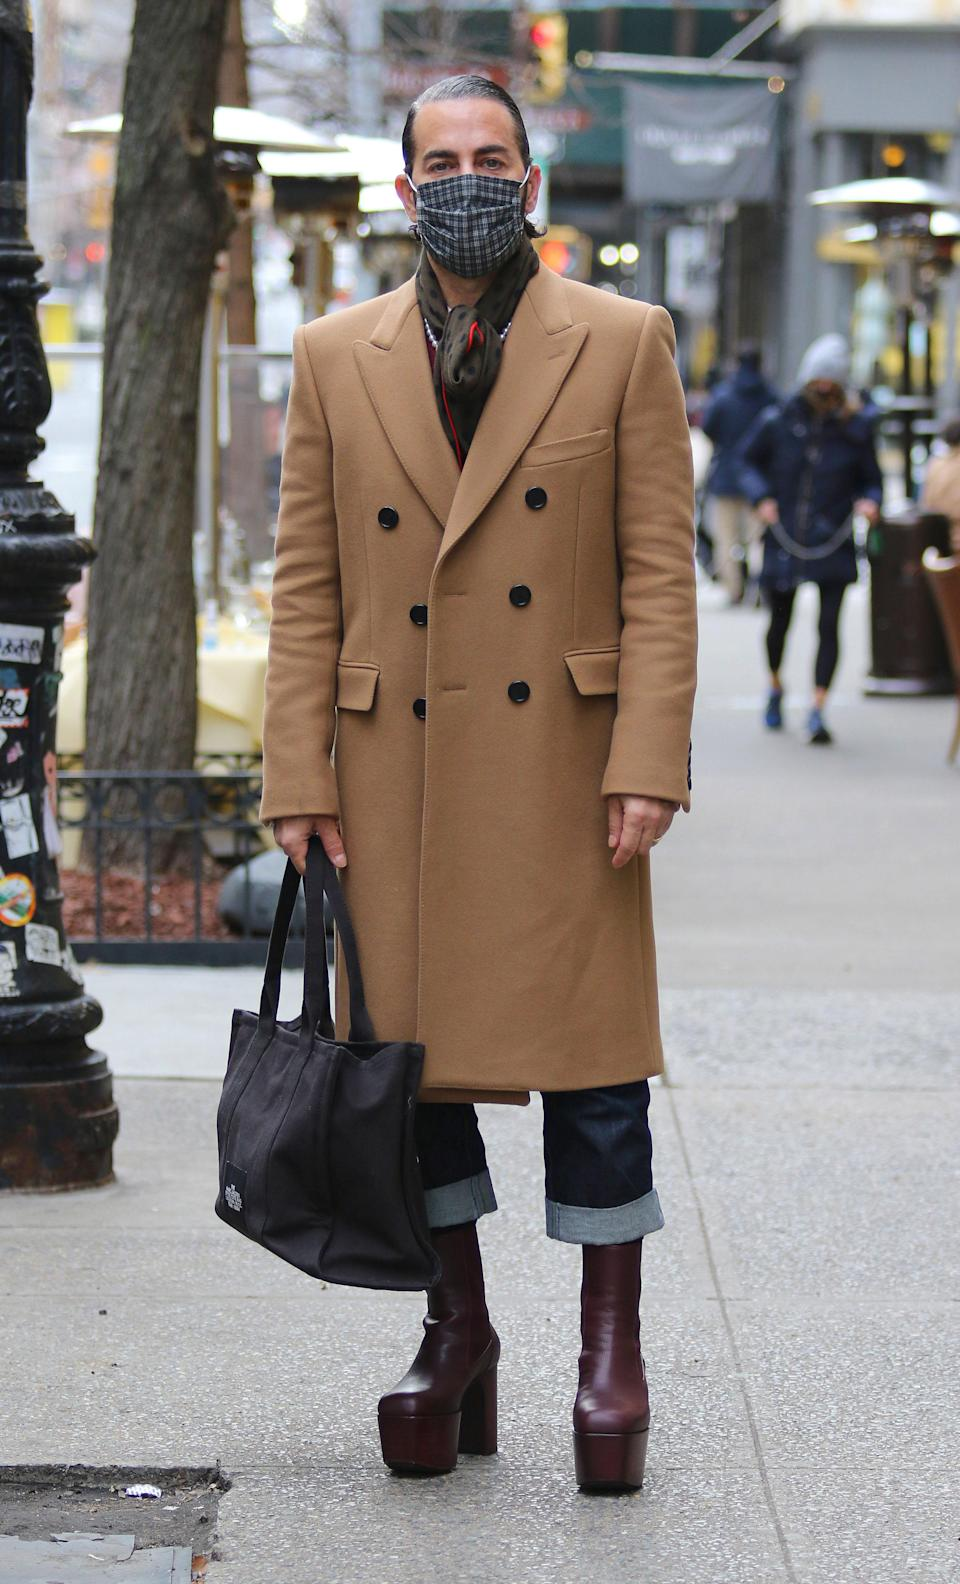 Marc Jacobs in New York, January 21, 2021.